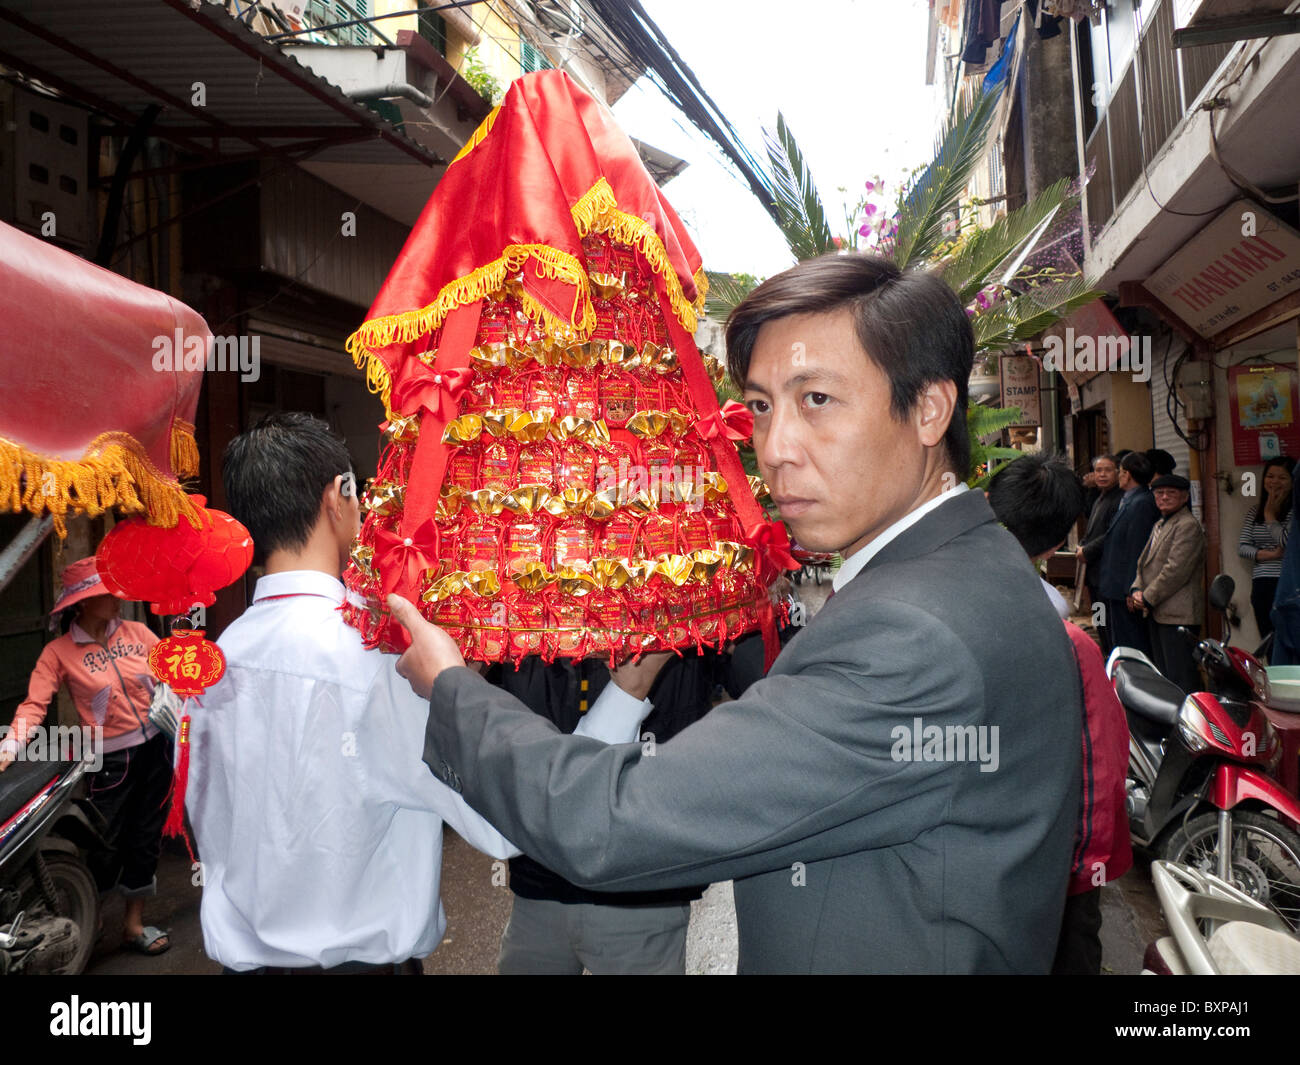 men carrying celebrations for a wedding - Stock Image